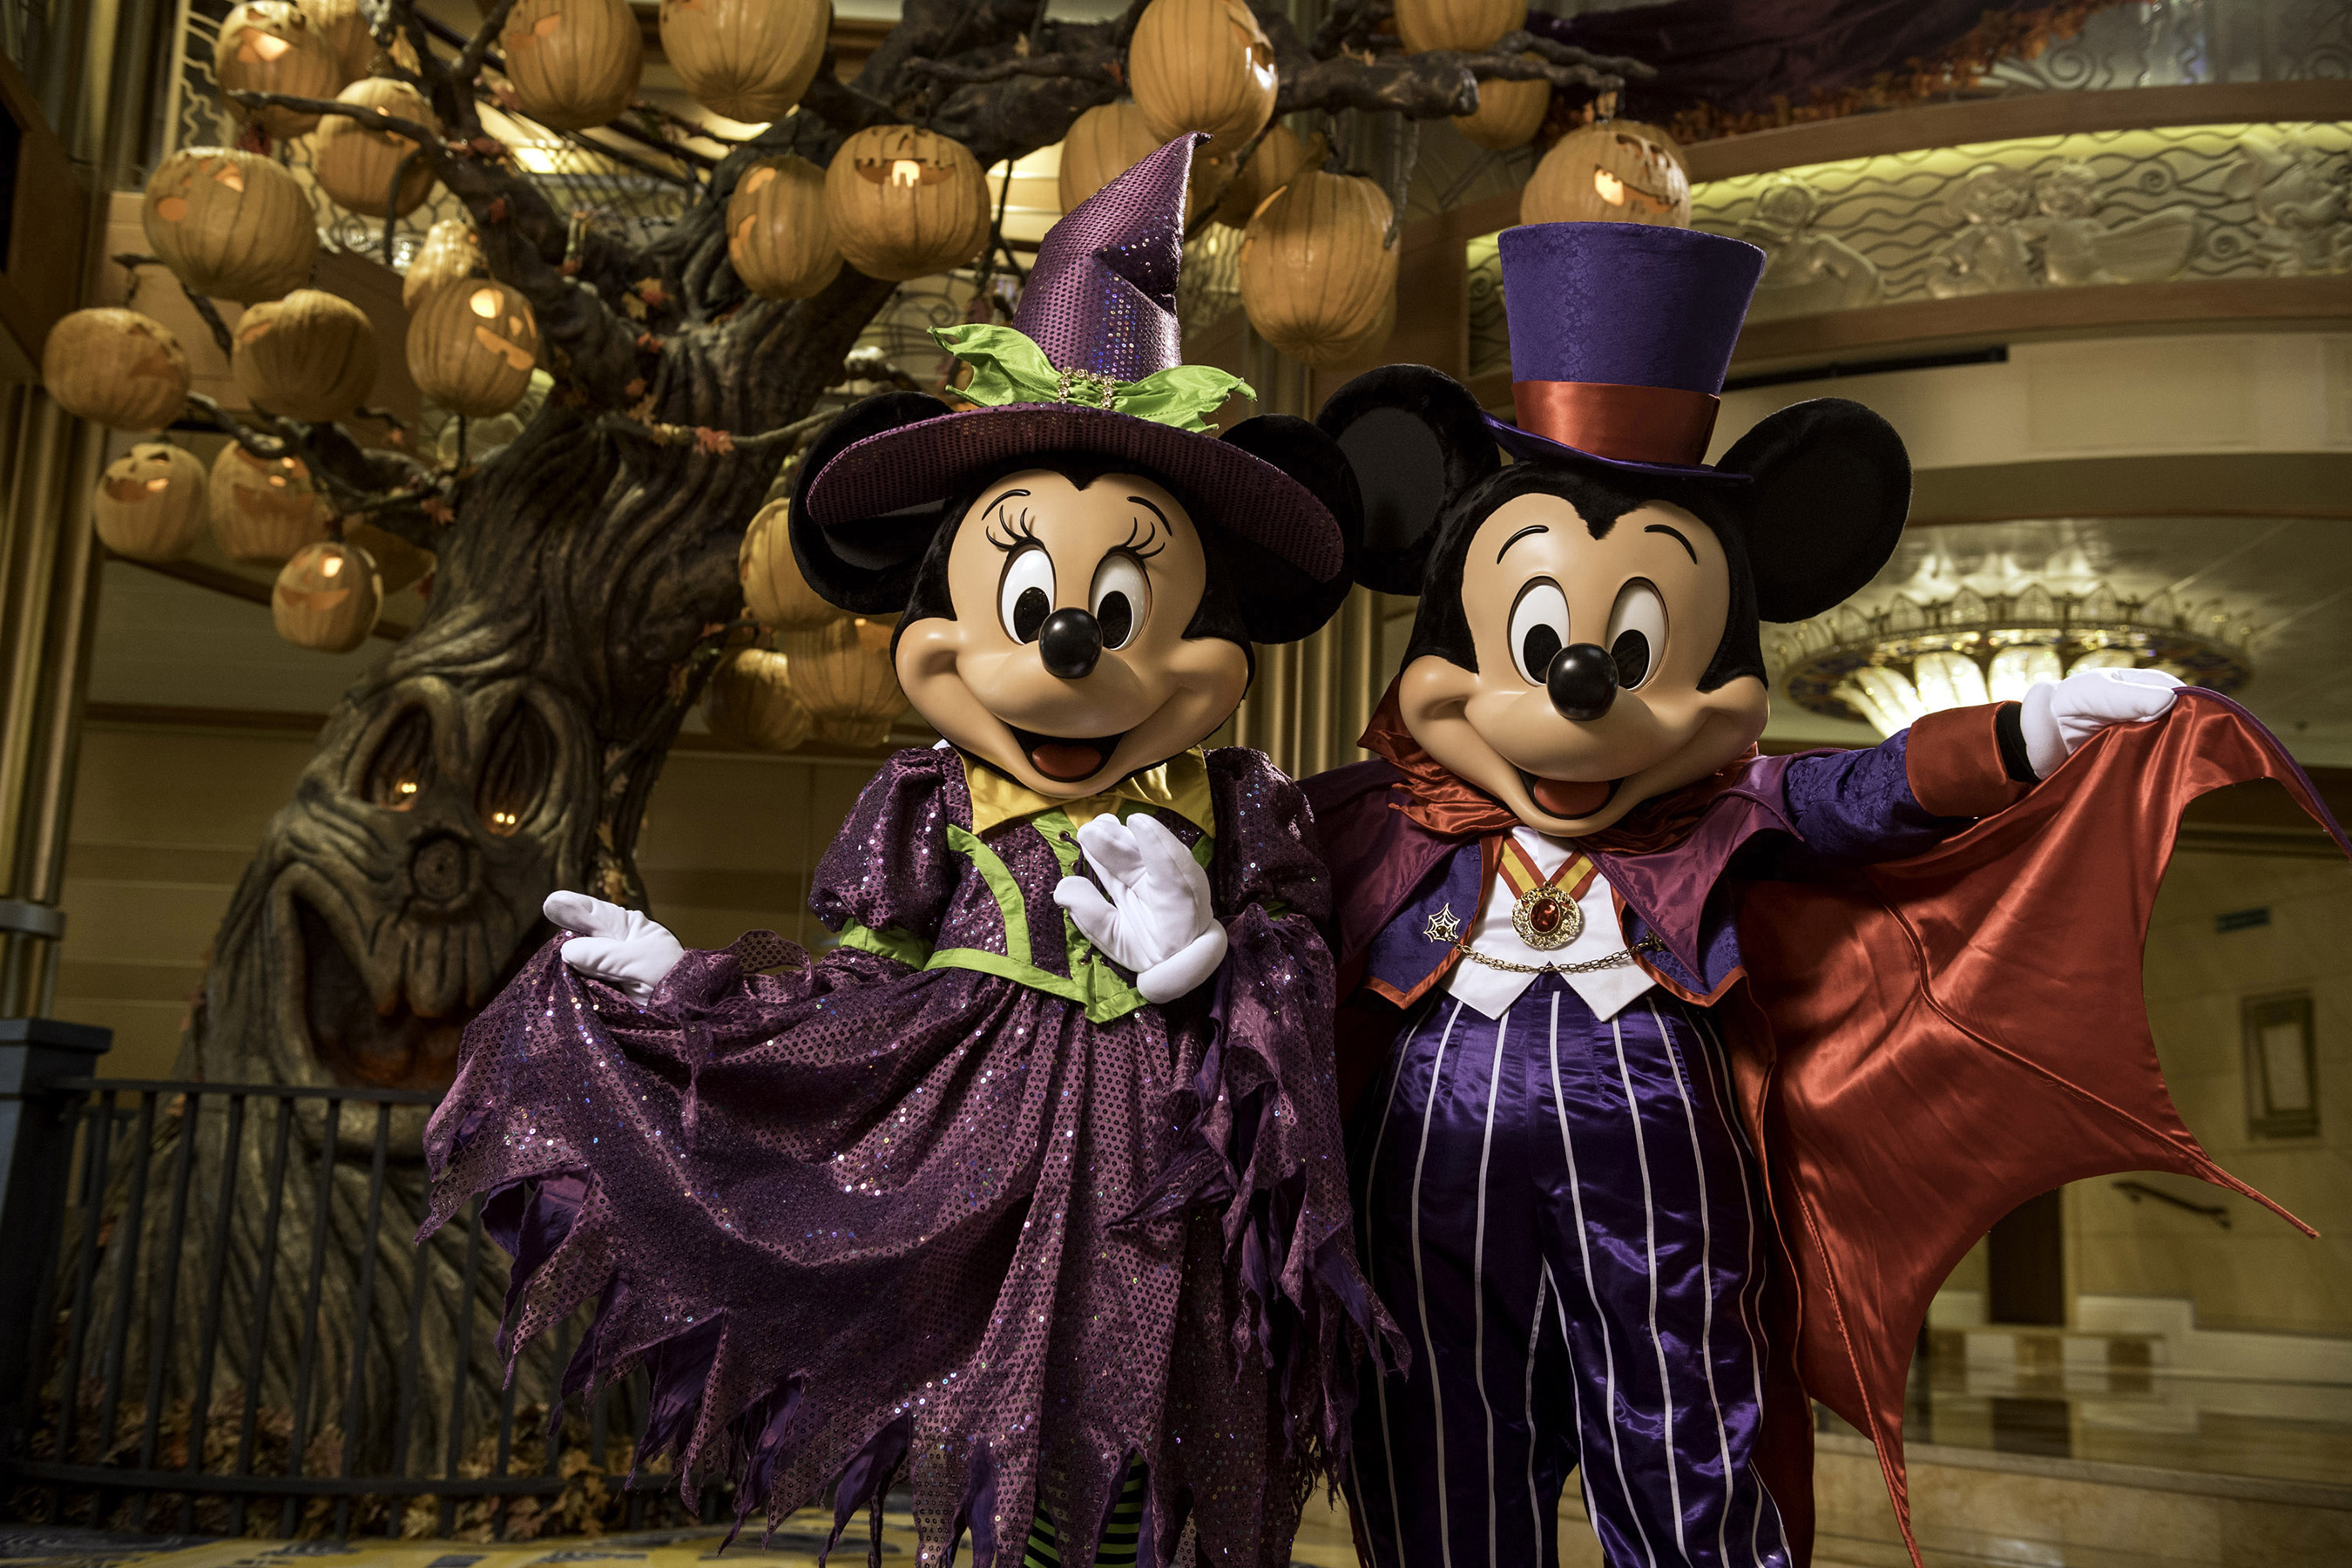 Disney Cruise Halloween 2020 Disney Cruise Line Announces Fall 2020 Itineraries with Fun and